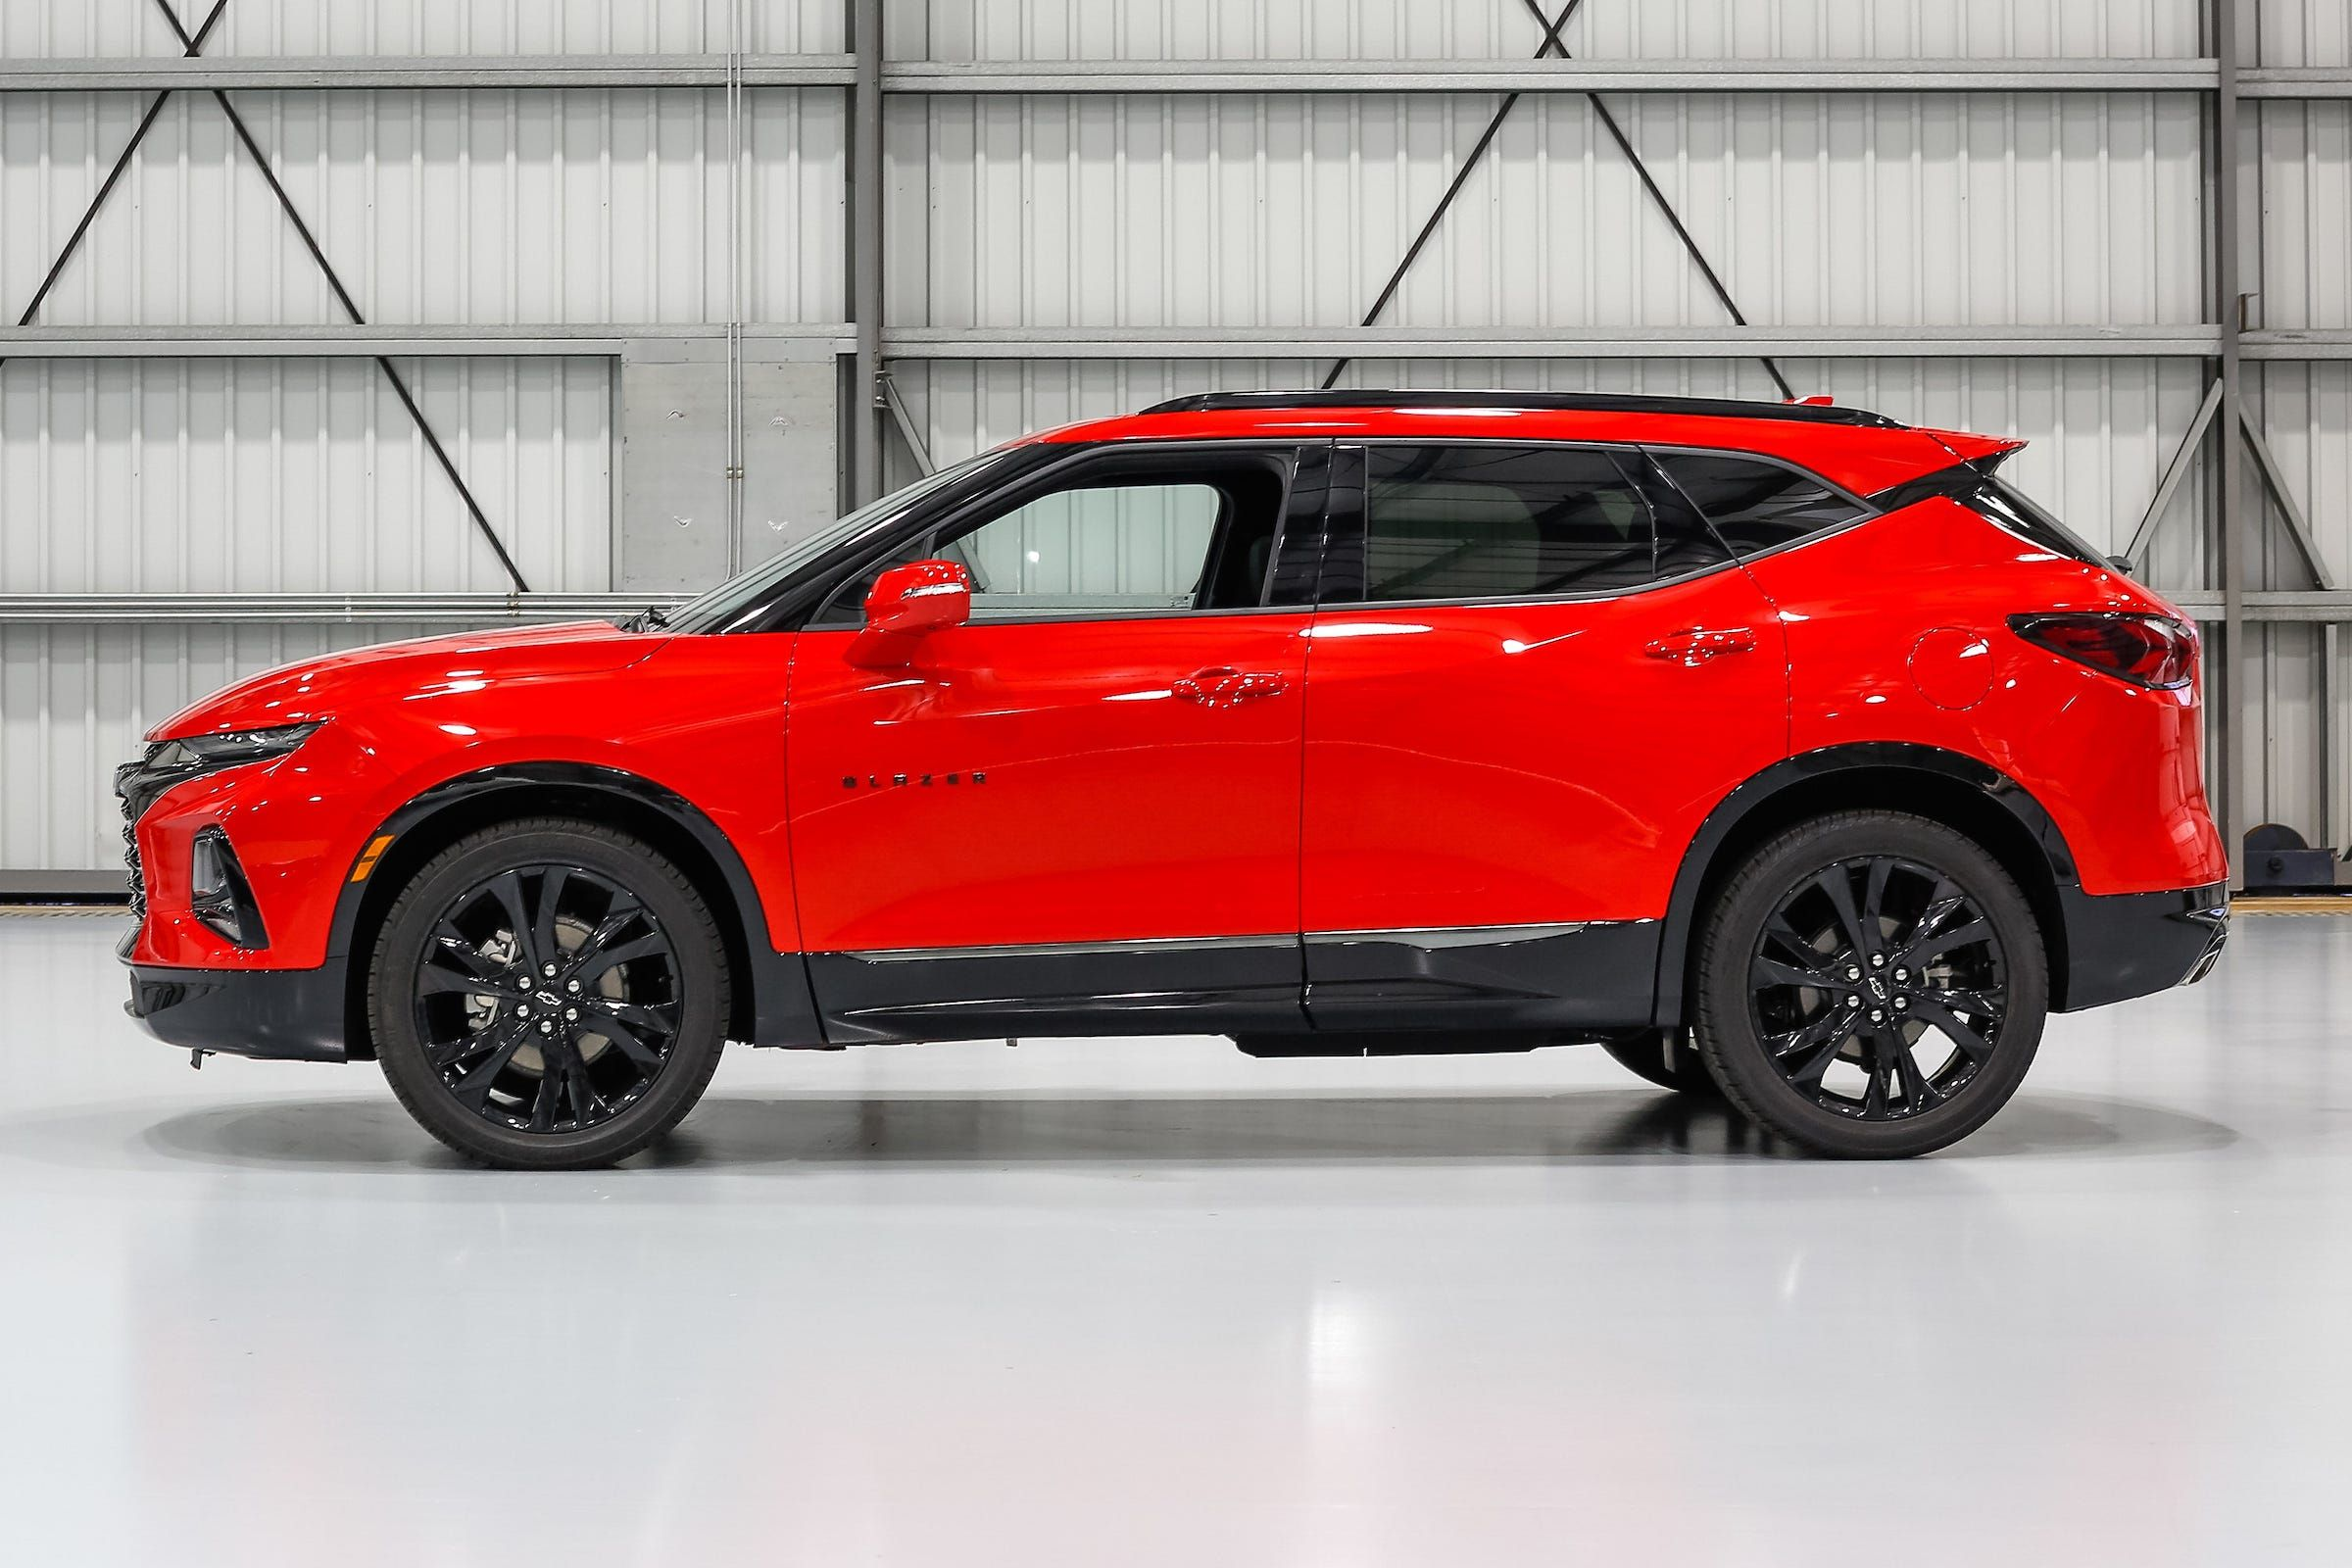 Fallout From Uaw Gm Strike Continues With Blazer Build Halted In Mexico Chevrolet Blazer Chevrolet Chevy Sports Cars